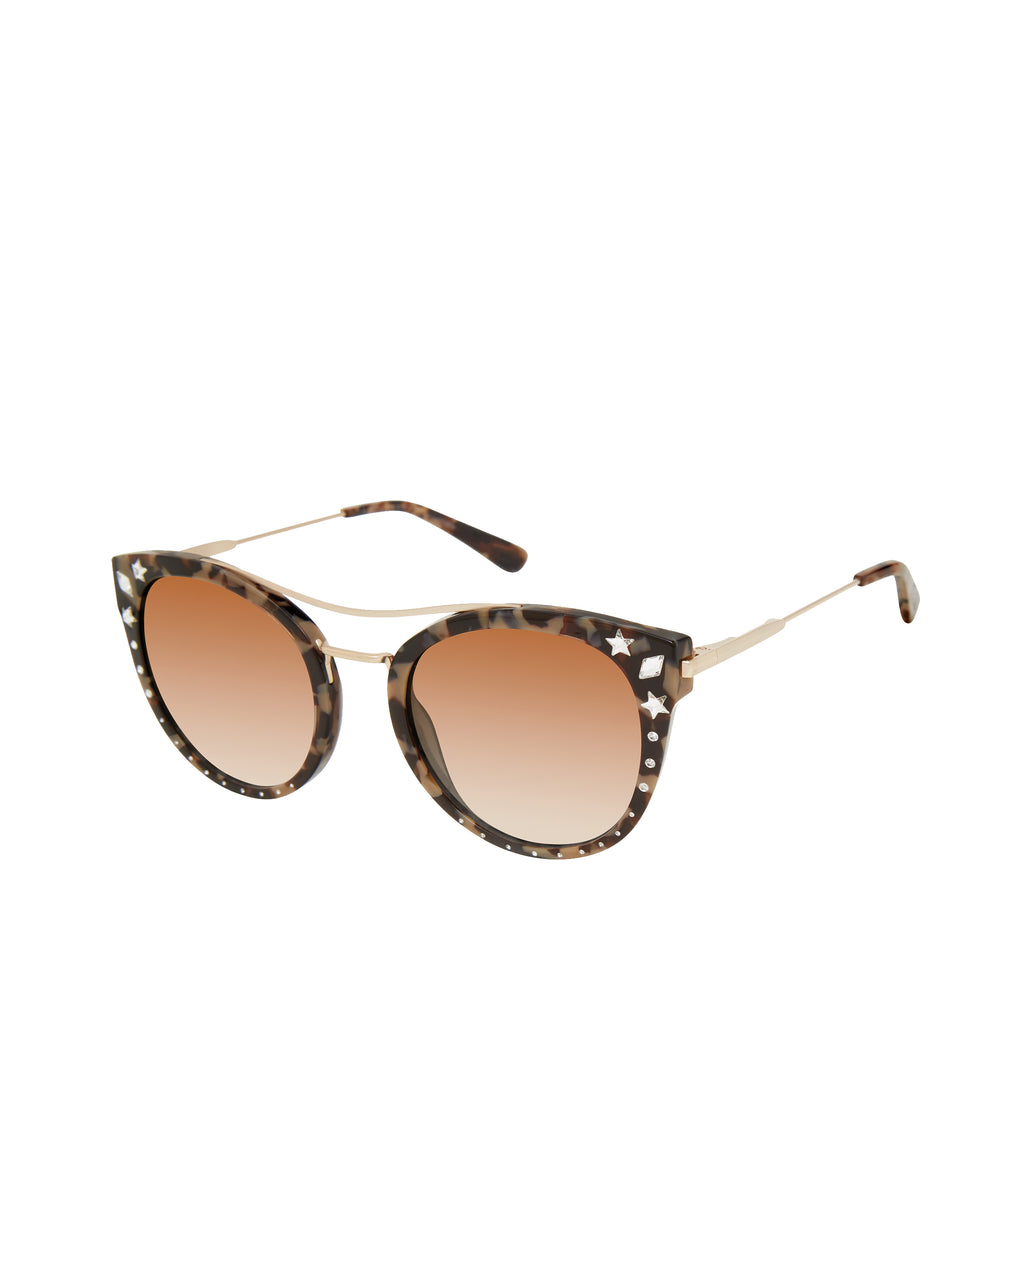 NMSTR02 - Strasbourg Sunglasses - accessories - sunglasses - THESE SUNGLASSES ARE CRAFTED WITH ACETATE AND ARE ESSENTIAL FOR A WEEKEND STROLL. 100% UVA/UVB.